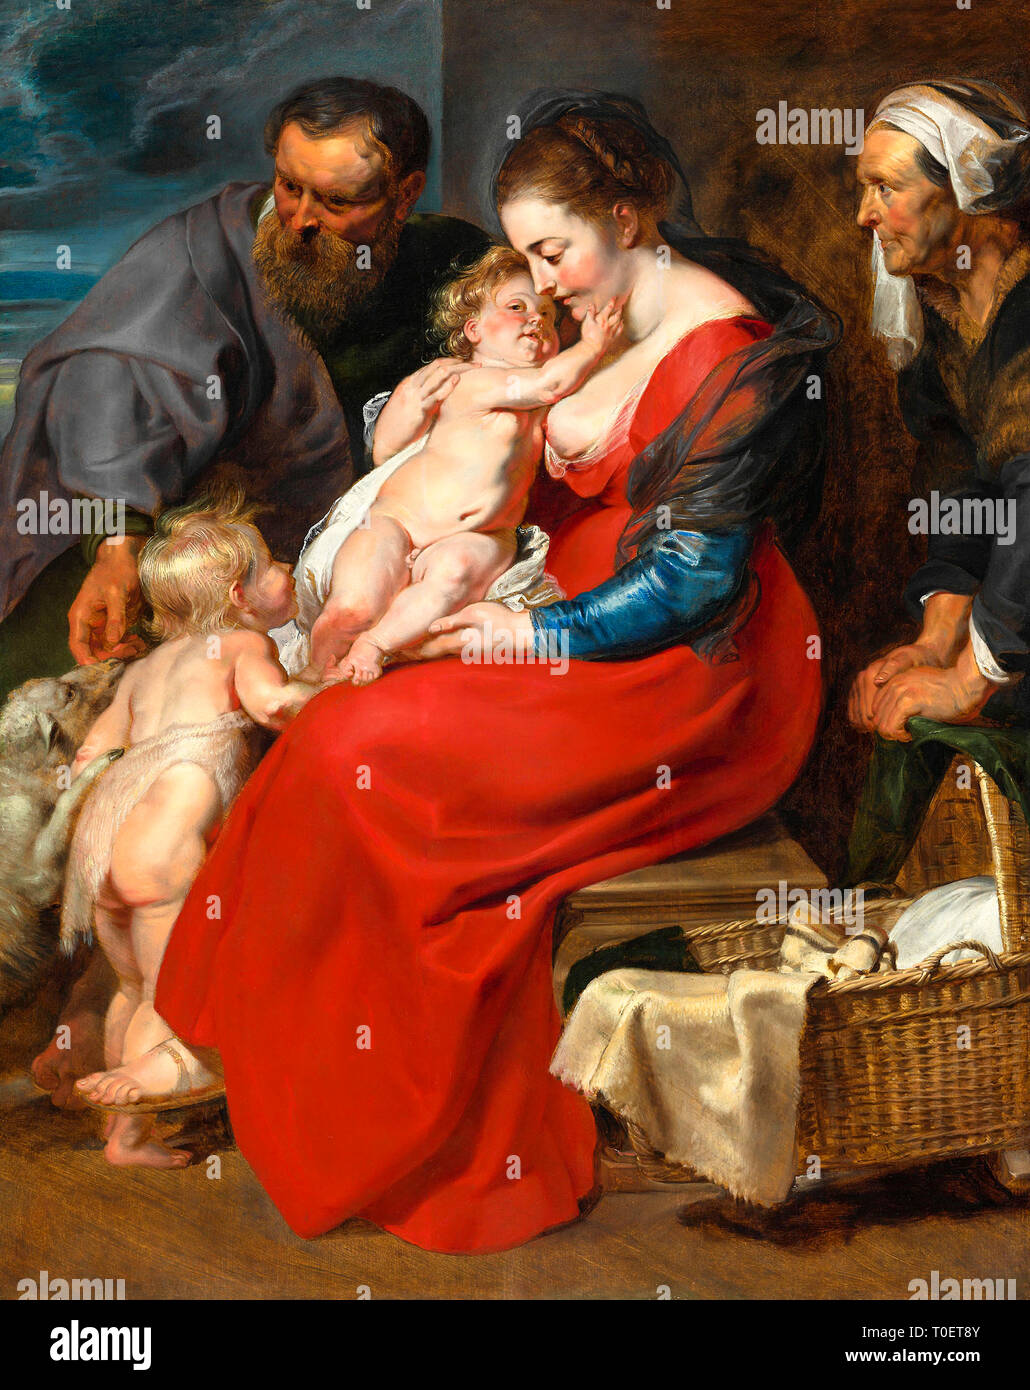 Peter Paul Rubens, The Holy Family with Saints Elizabeth and John the Baptist, painting, c. 1610–1620 - Stock Image